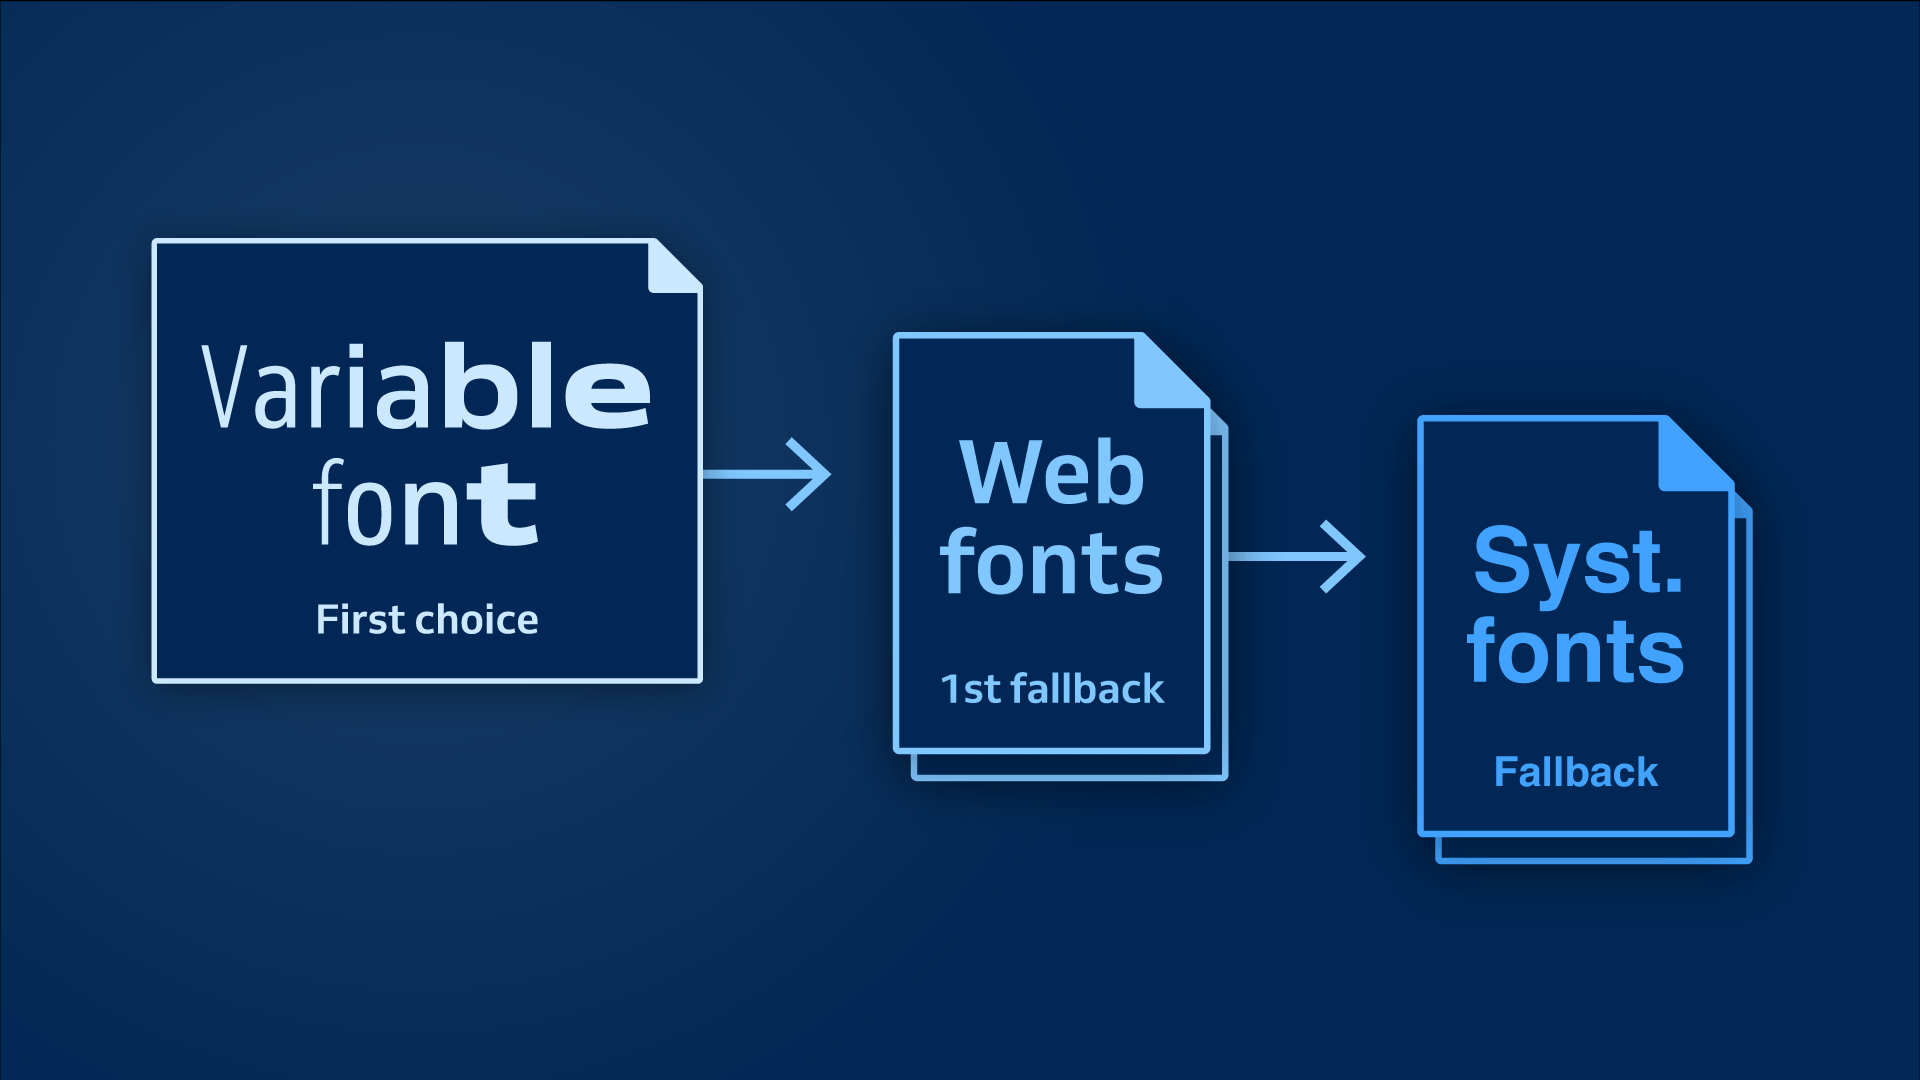 Variable Fonts Web Fonts Fallback